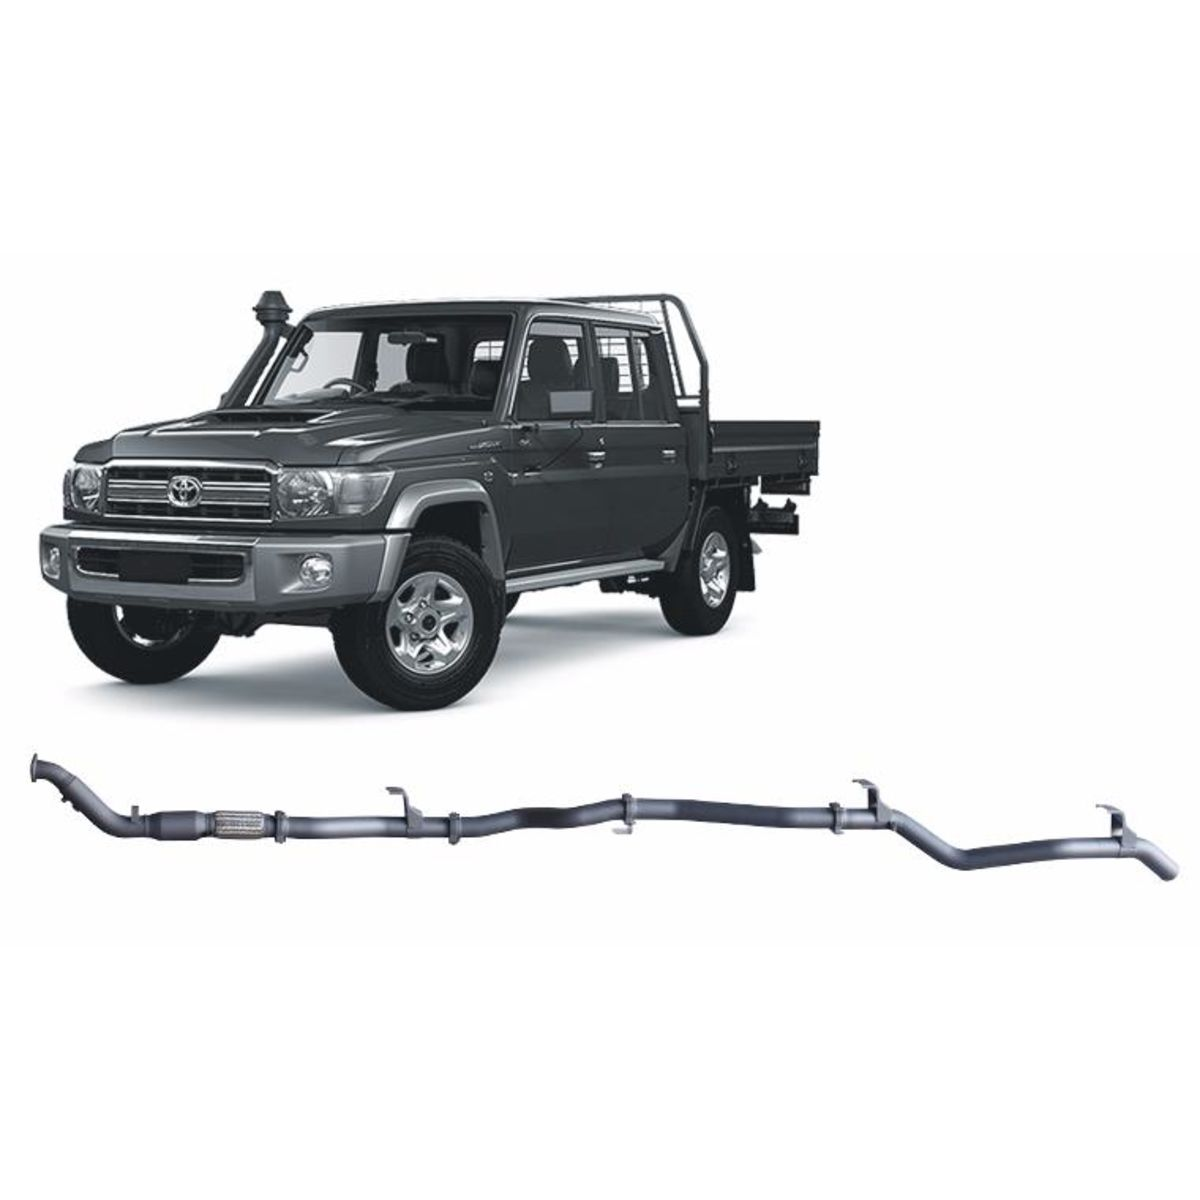 Redback Extreme Duty Exhaust to suit Toyota Landcruiser 79 Series Double Cab (01/2012 - 10/2016)